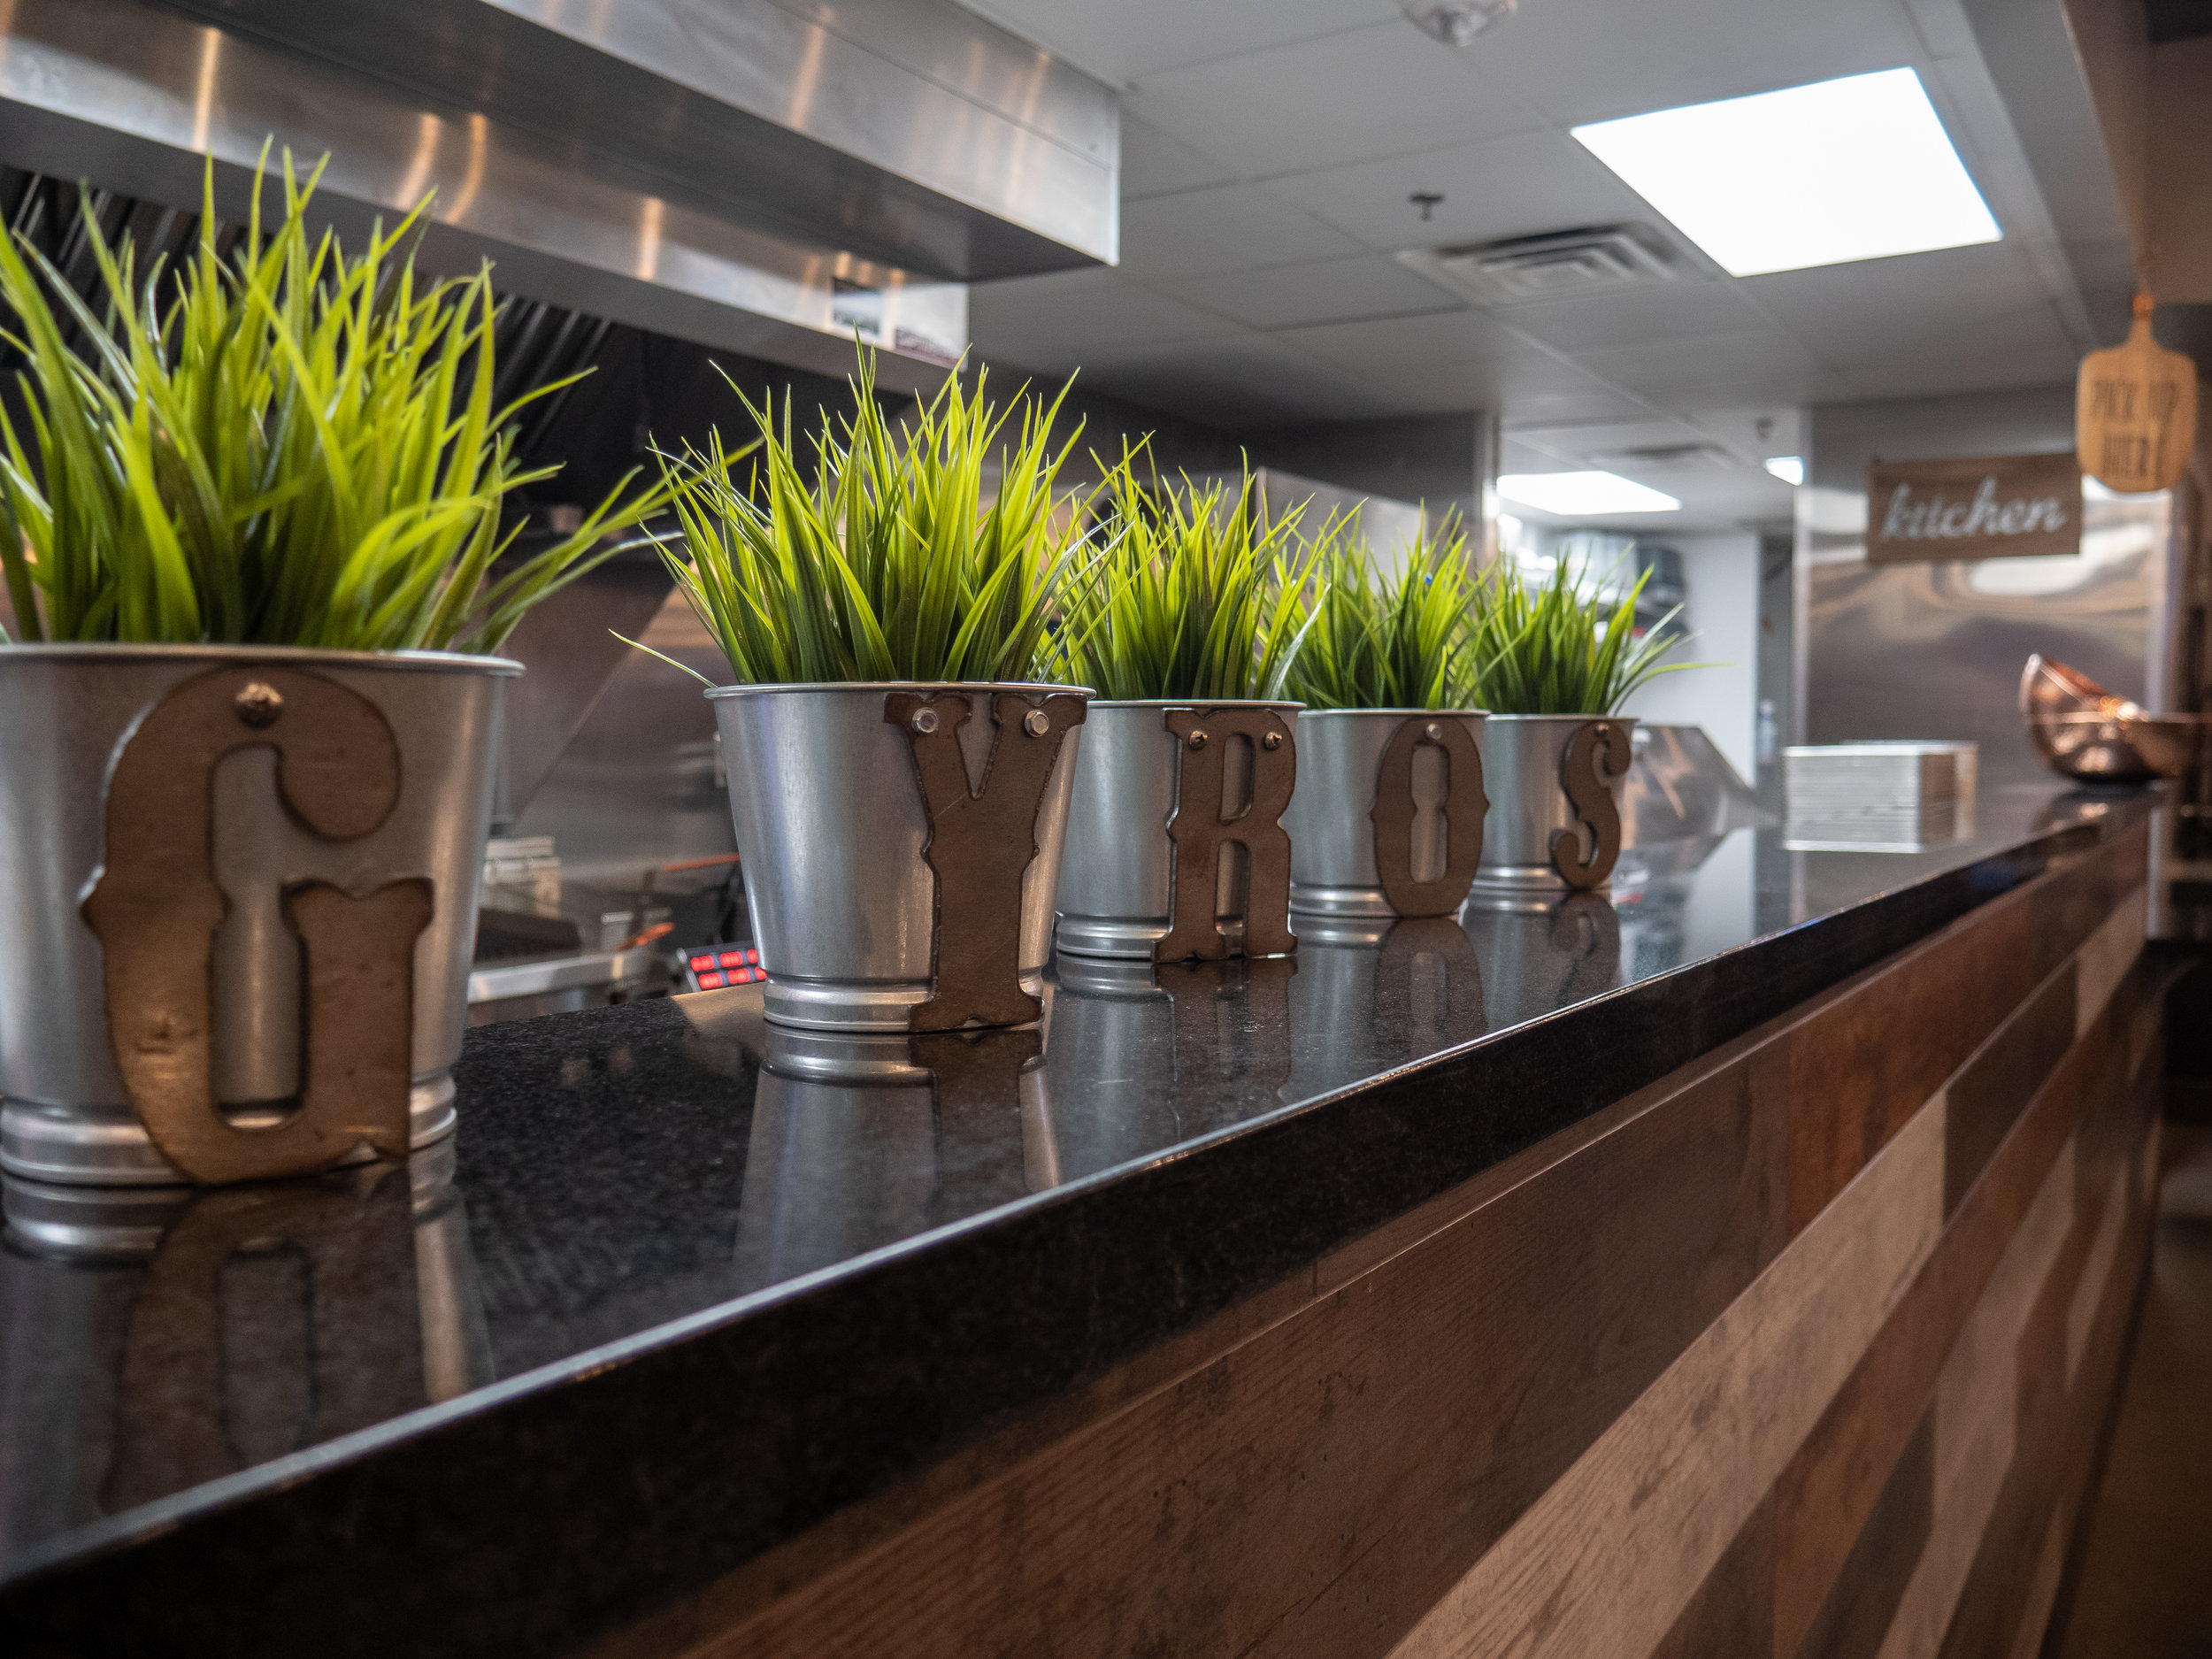 View of the Gyro 360 counter and five plants in metal planters on top of the counter.